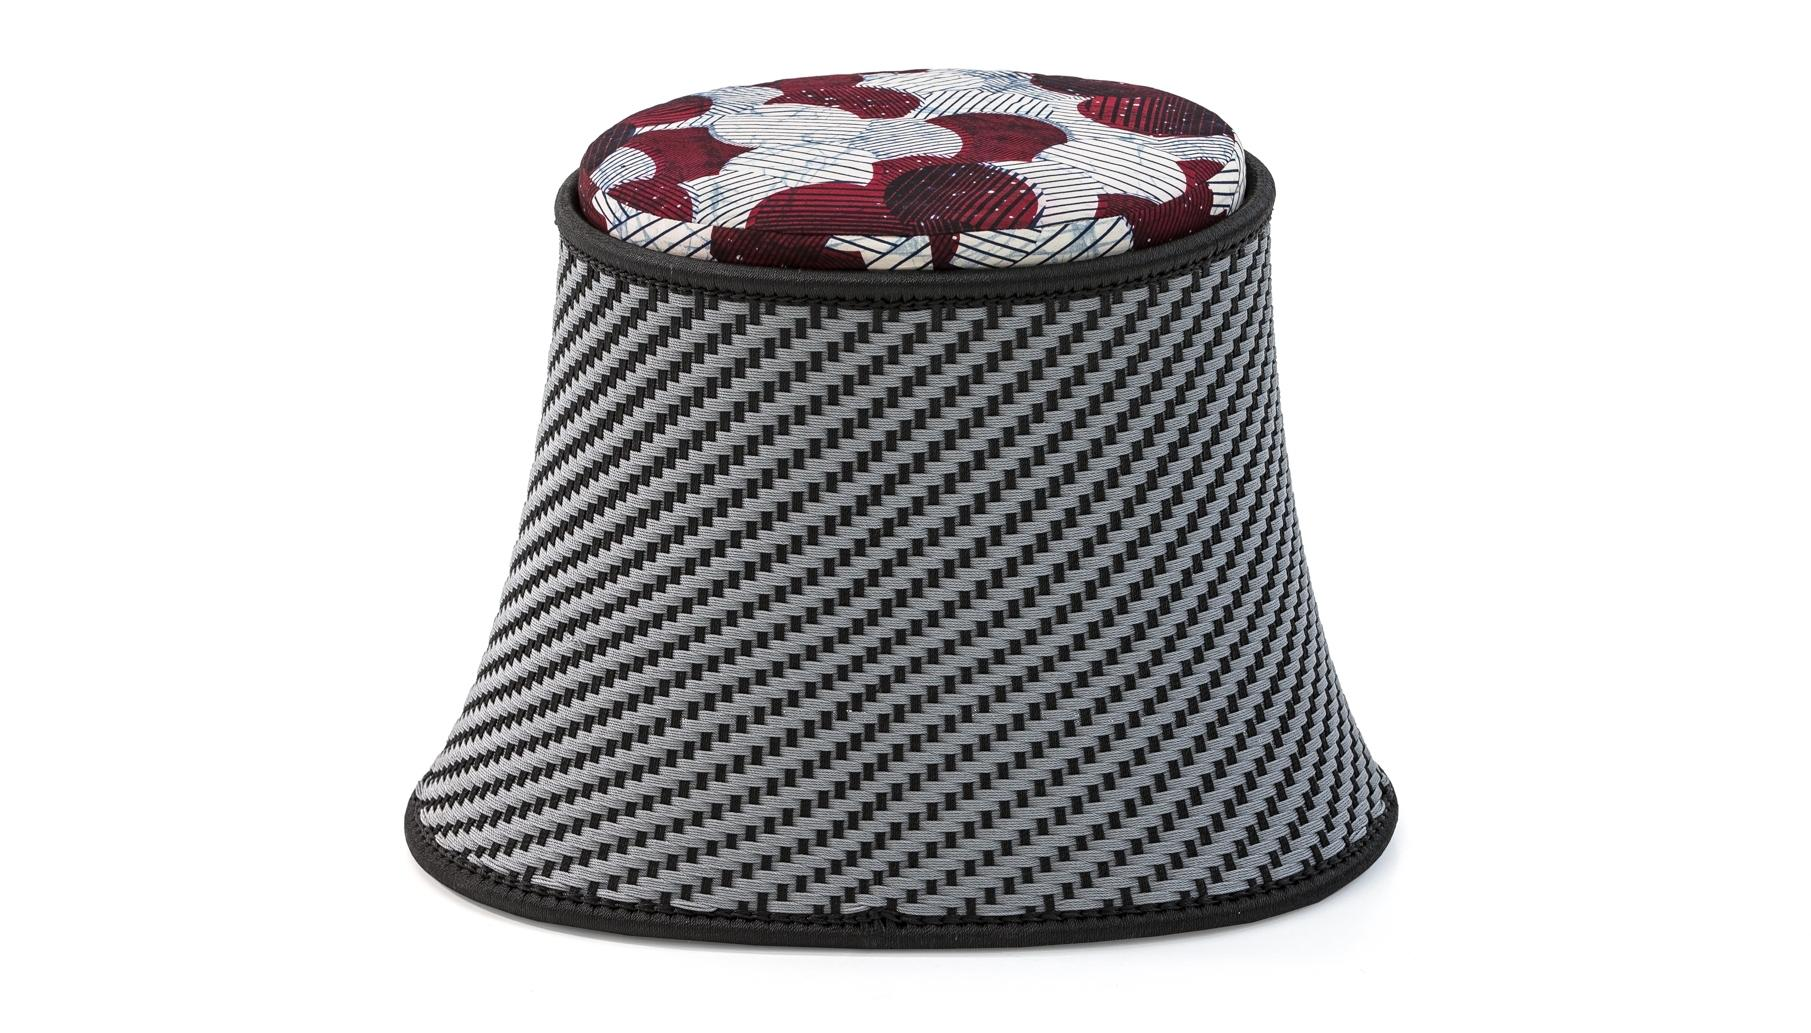 Sitzsack Italienisch Moroso Baobab Pouf Stool In Handwoven Thread Fabric Seat Pad By Marc Thorpe